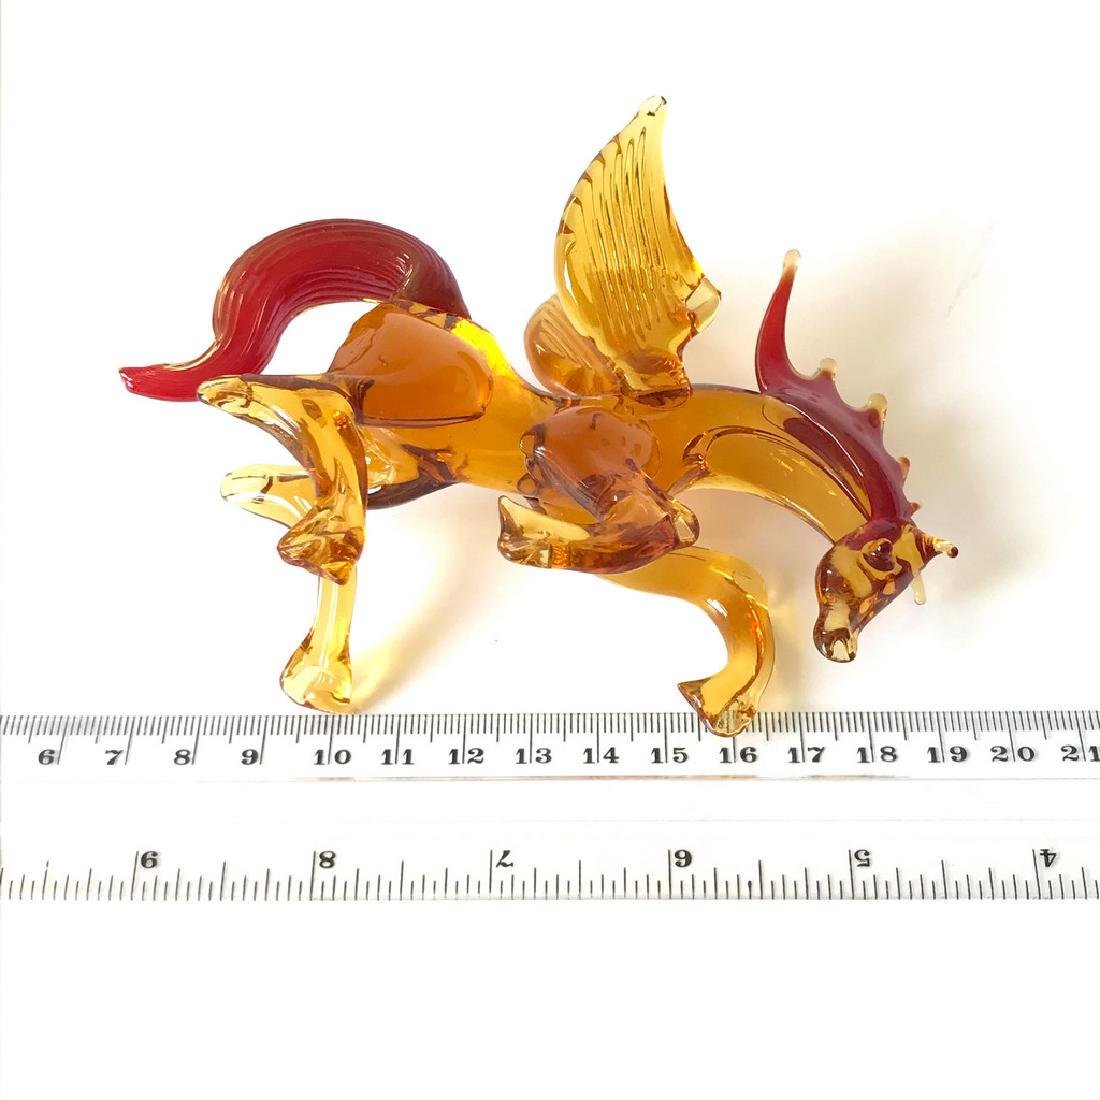 Figurine of Pegasus the winged horse amber coloured - 5